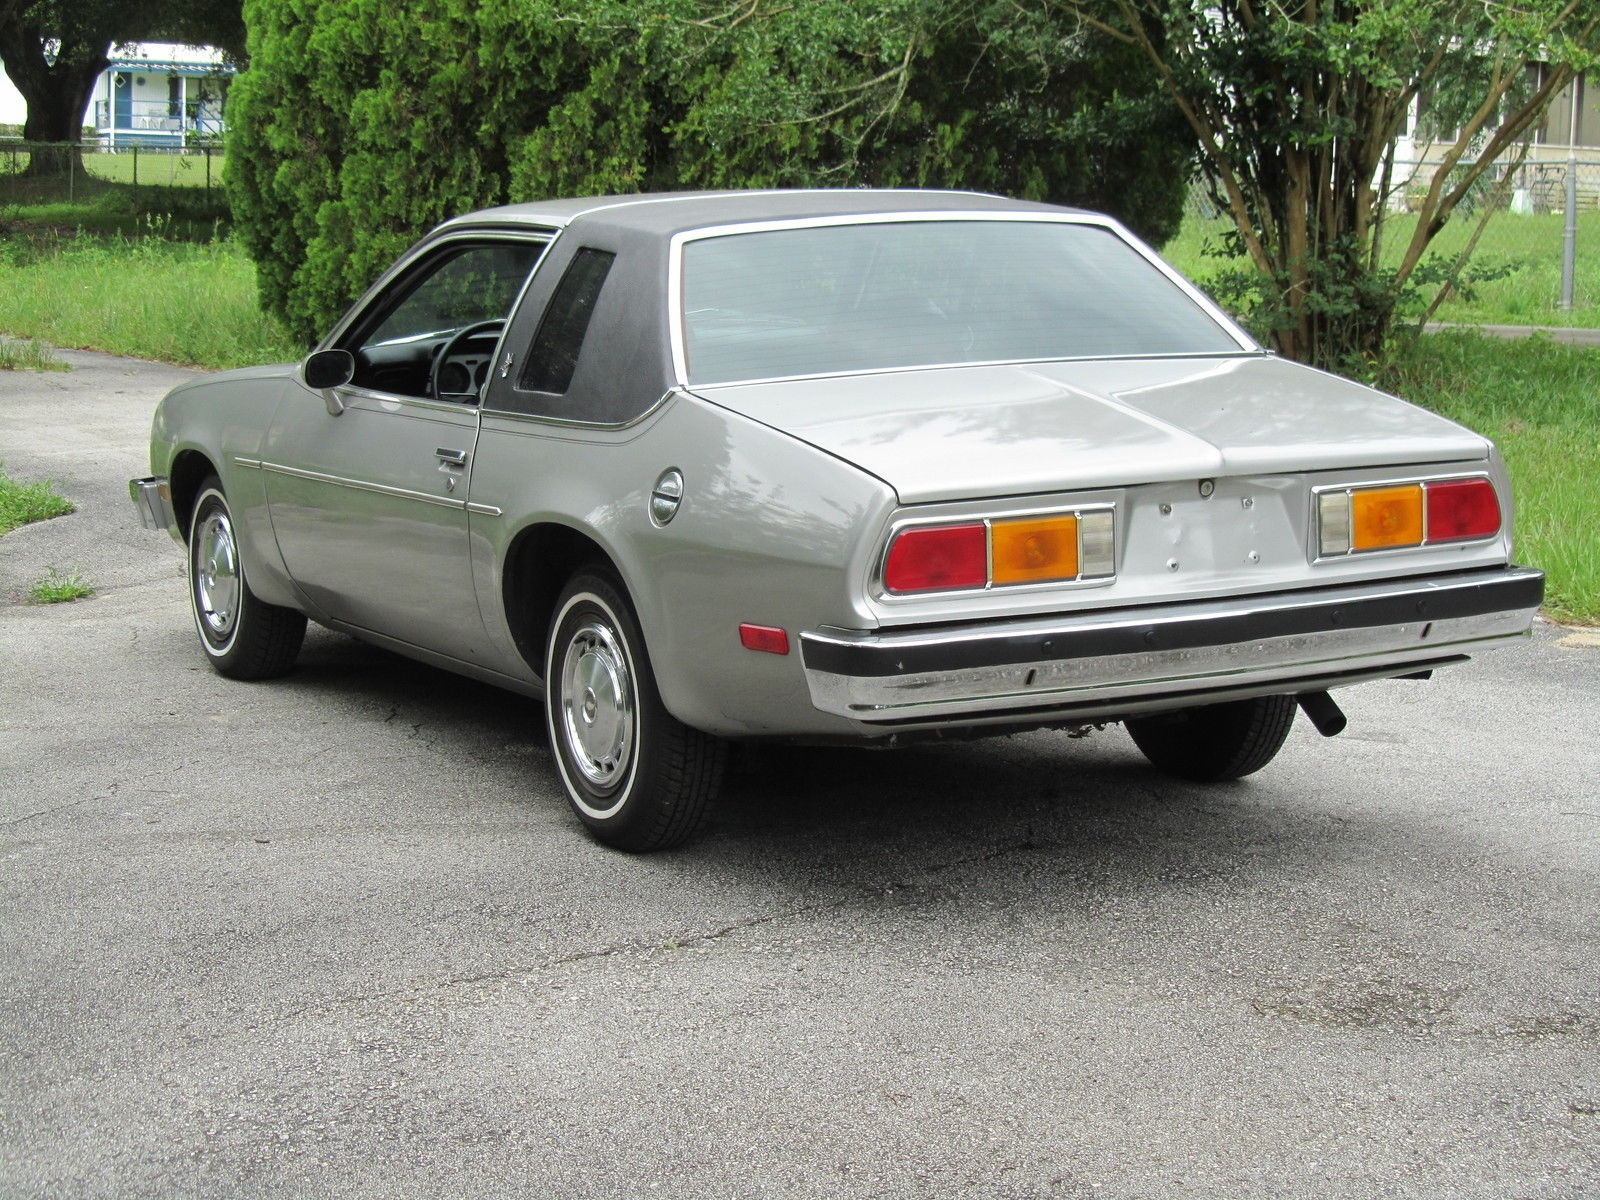 1980 Chevy Monza For Sale By Owner Autos Post